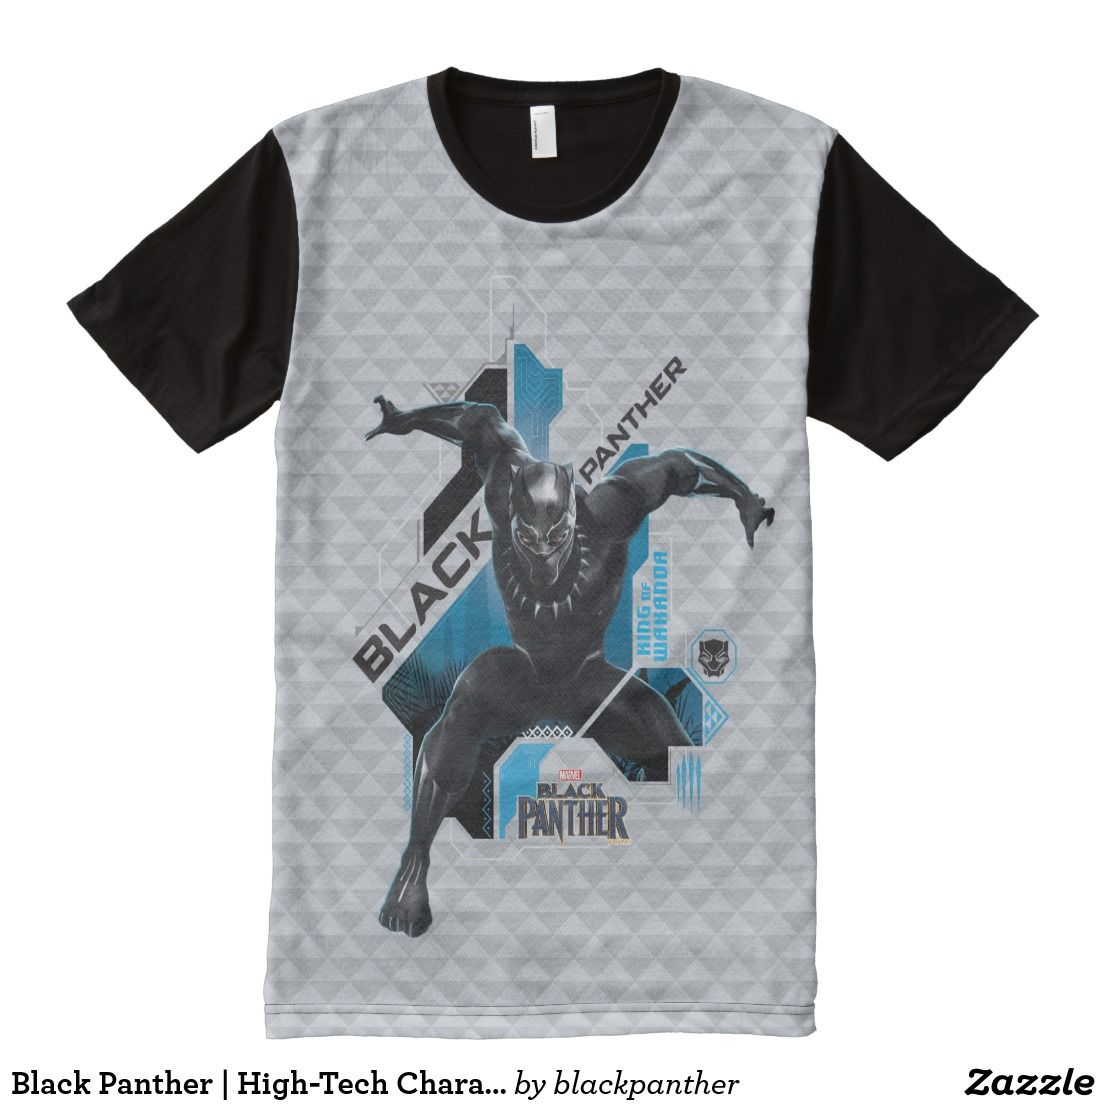 c45c26a0 #Black #Panther | High-Tech #Character Graphic All-Over-Print #T-Shirt  Black Panther crouches with arms outstreched in this high-tech graphic with  tribal ...